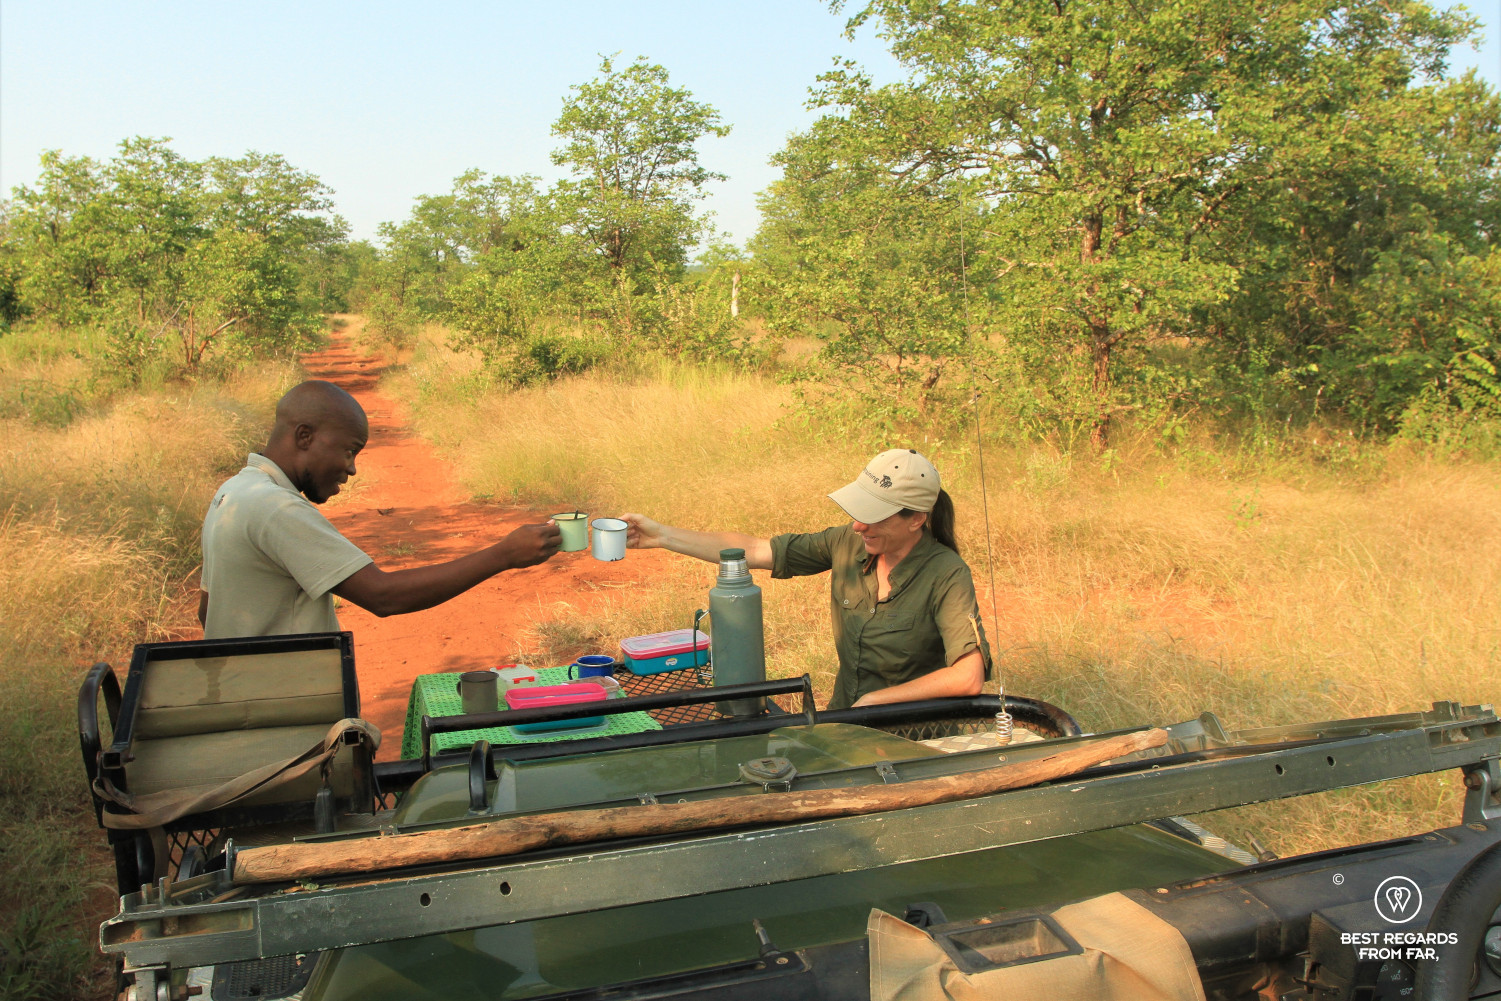 Author Claire Lessiau cheering with EcoTracker instructor Norman Chauke by the Land Rover